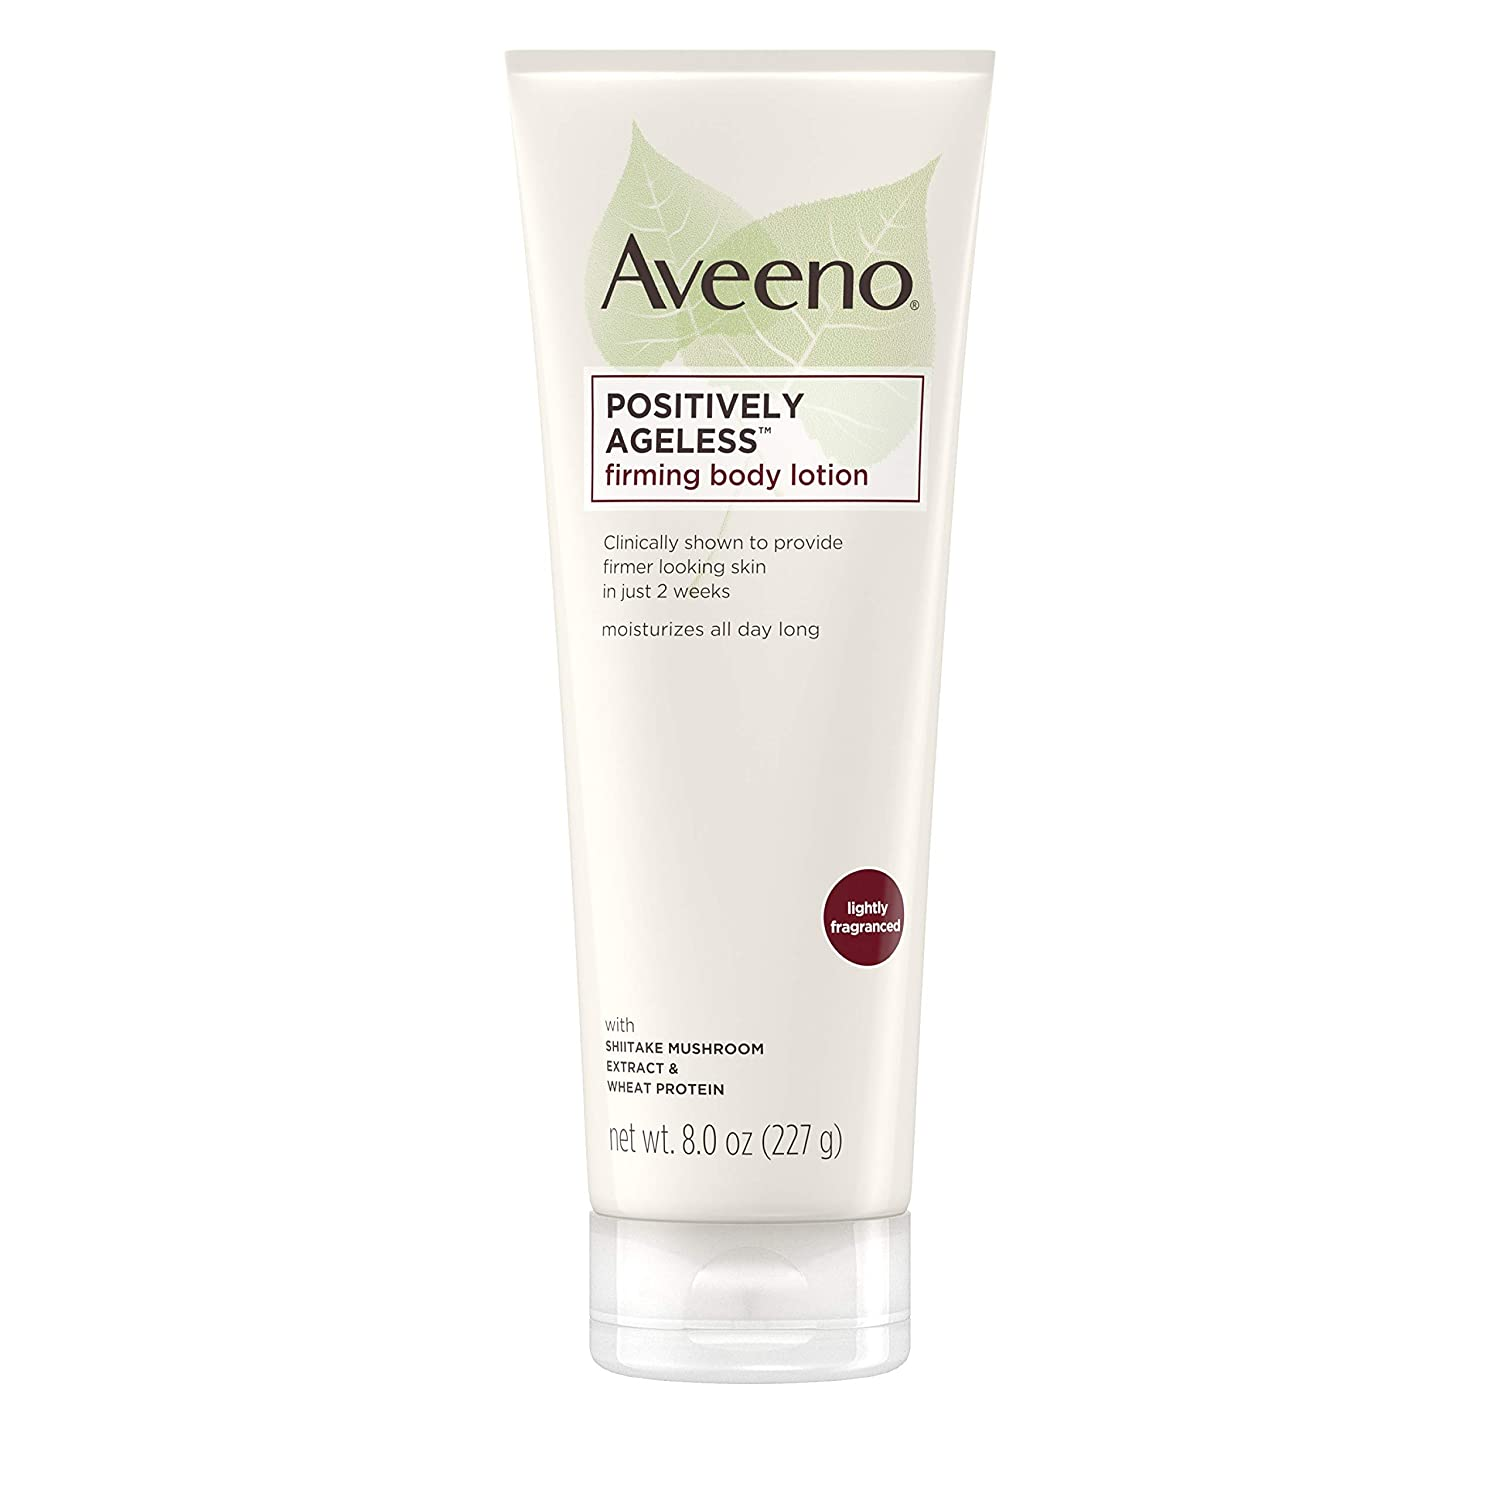 Aveeno Positively Ageless Anti-Aging Firming Body Lotion with Shiitake Mushroom complex